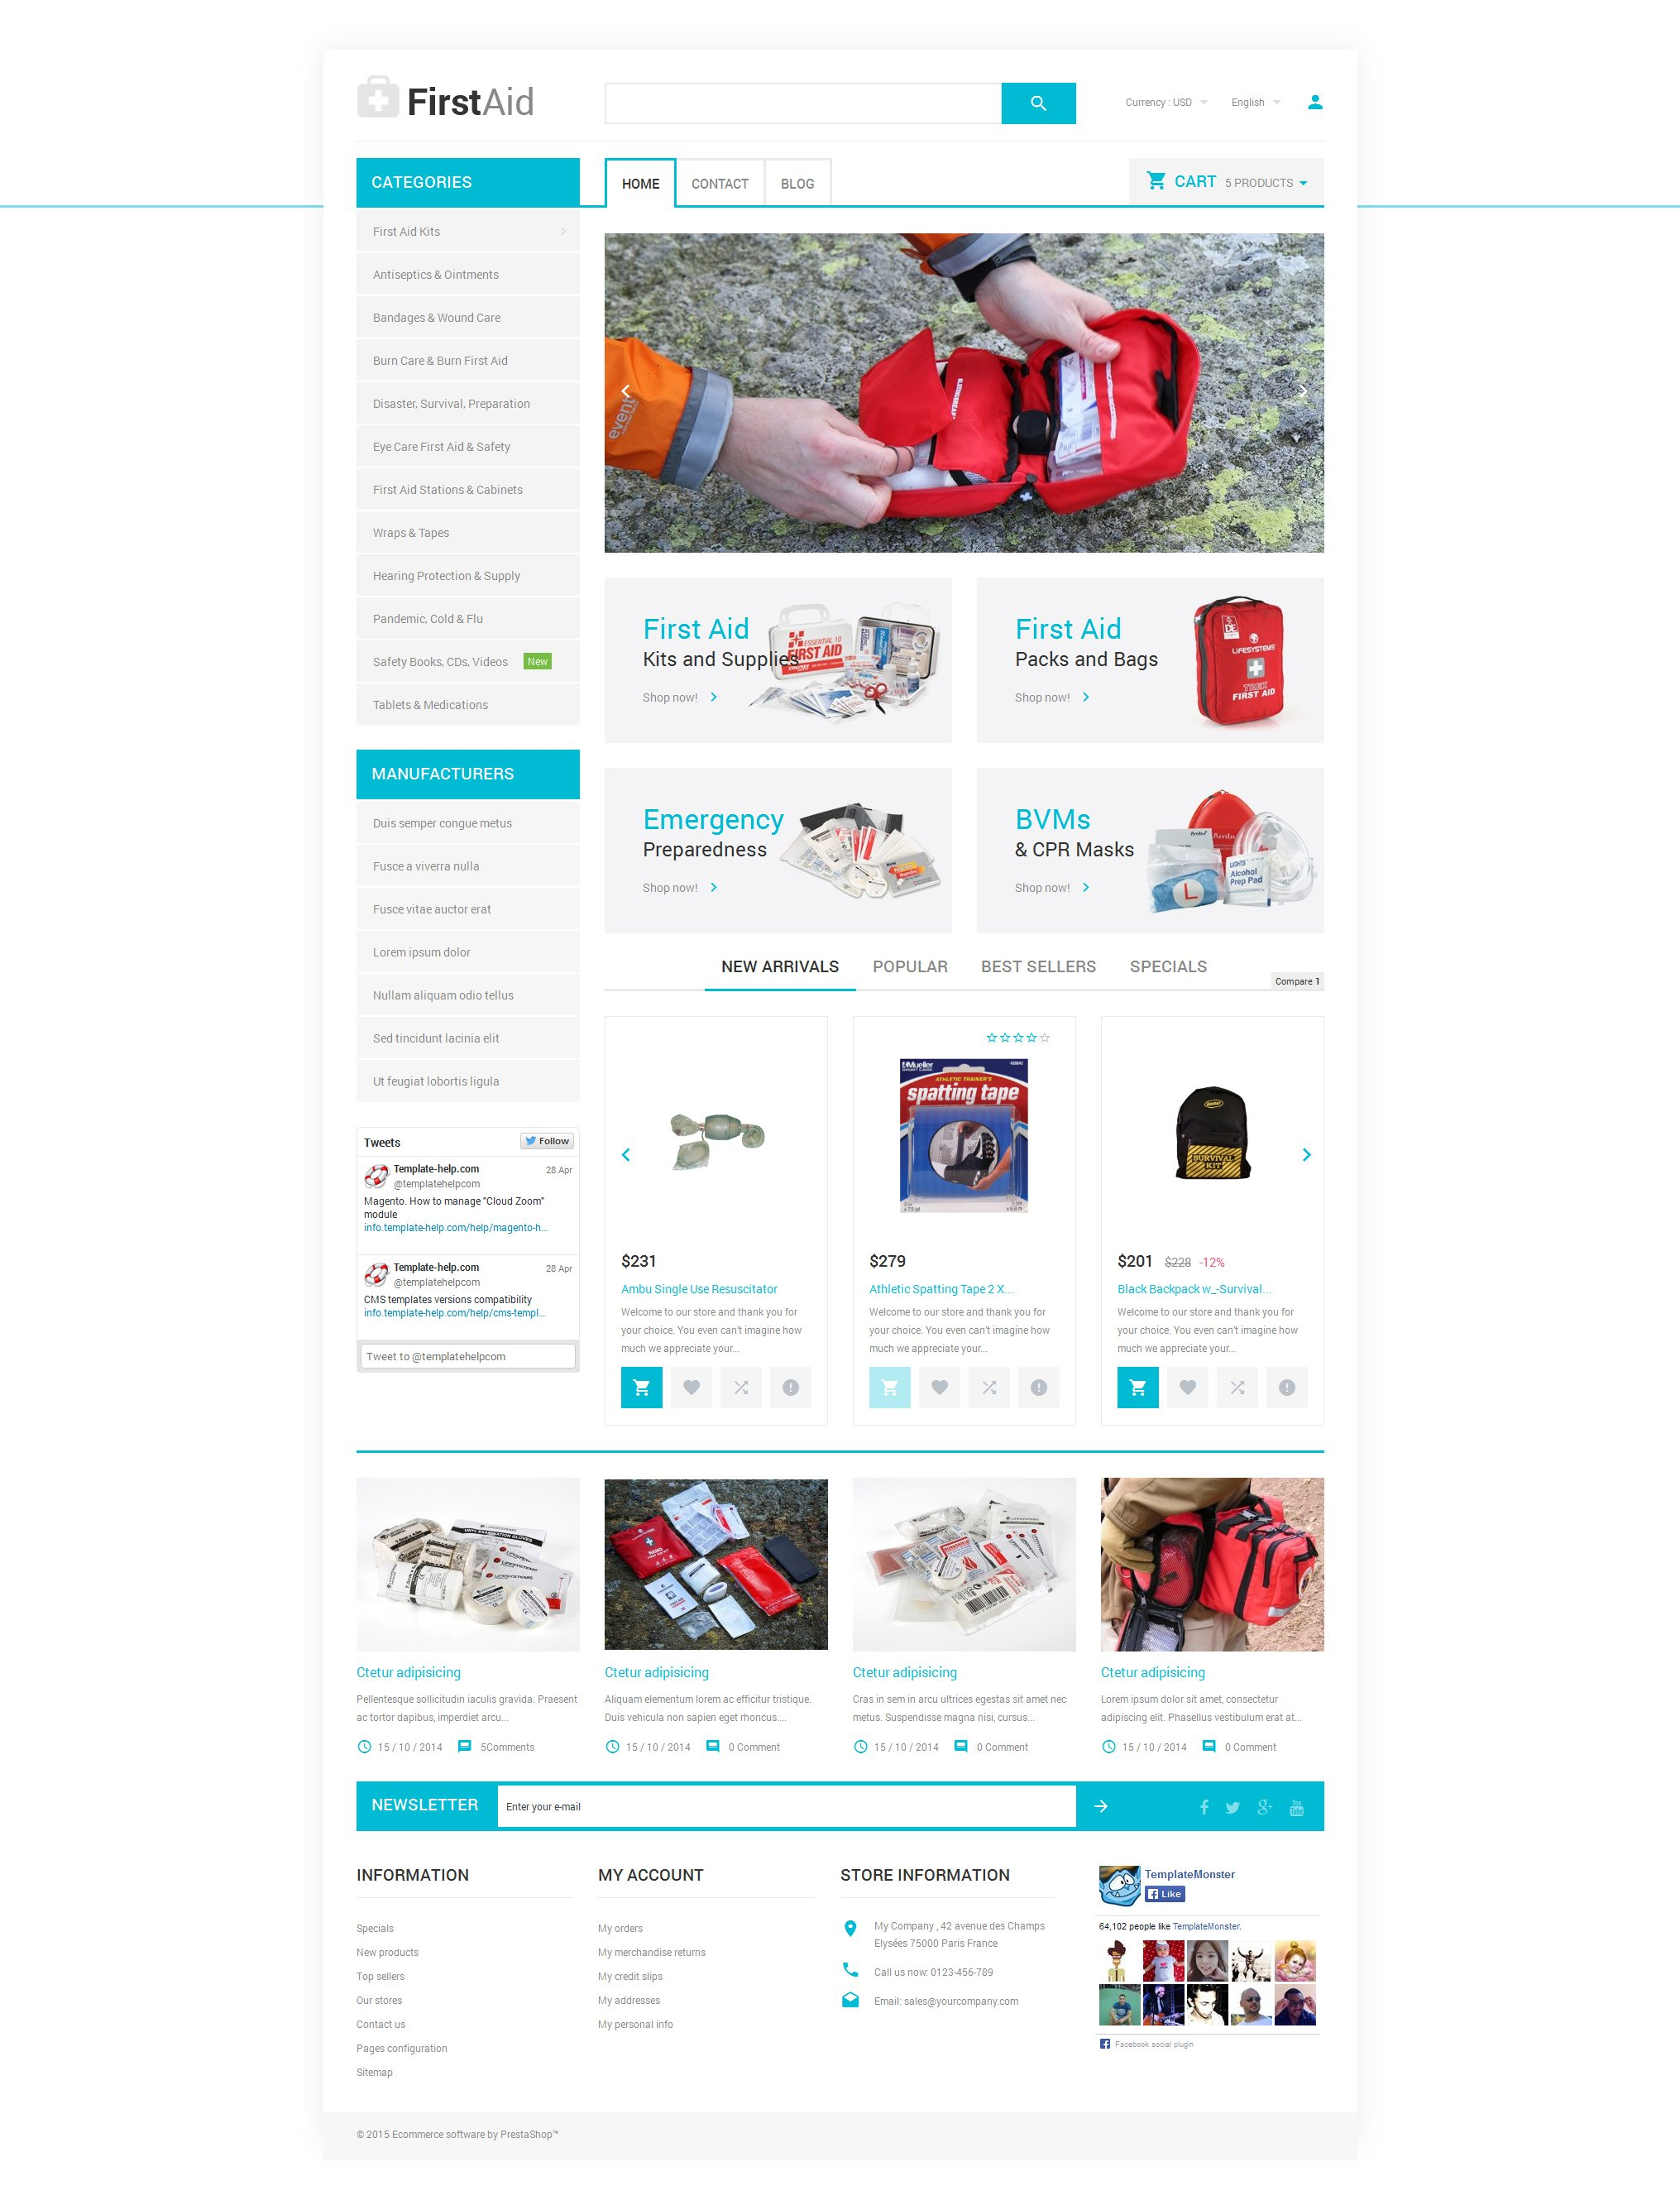 The First Aid PrestaShop Design 53855, one of the best PrestaShop themes of its kind (medical, most popular), also known as first aid PrestaShop template, ambulance PrestaShop template, cardiologist PrestaShop template, cardiology clinic PrestaShop template, medical medicine PrestaShop template, equipment store PrestaShop template, pump PrestaShop template, therapy PrestaShop template, ophthalmology PrestaShop template, monitor PrestaShop template, laboratory PrestaShop template, neonatal PrestaShop template, surgical PrestaShop template, veterinary PrestaShop template, respiratory PrestaShop template, neurology PrestaShop template, exam PrestaShop template, endoscopy PrestaShop template, cosmetic PrestaShop template, defibrillator and related with first aid, ambulance, cardiologist, cardiology clinic, medical medicine, equipment store, pump, therapy, ophthalmology, monitor, laboratory, neonatal, surgical, veterinary, respiratory, neurology, exam, endoscopy, cosmetic, defibrillator, etc.